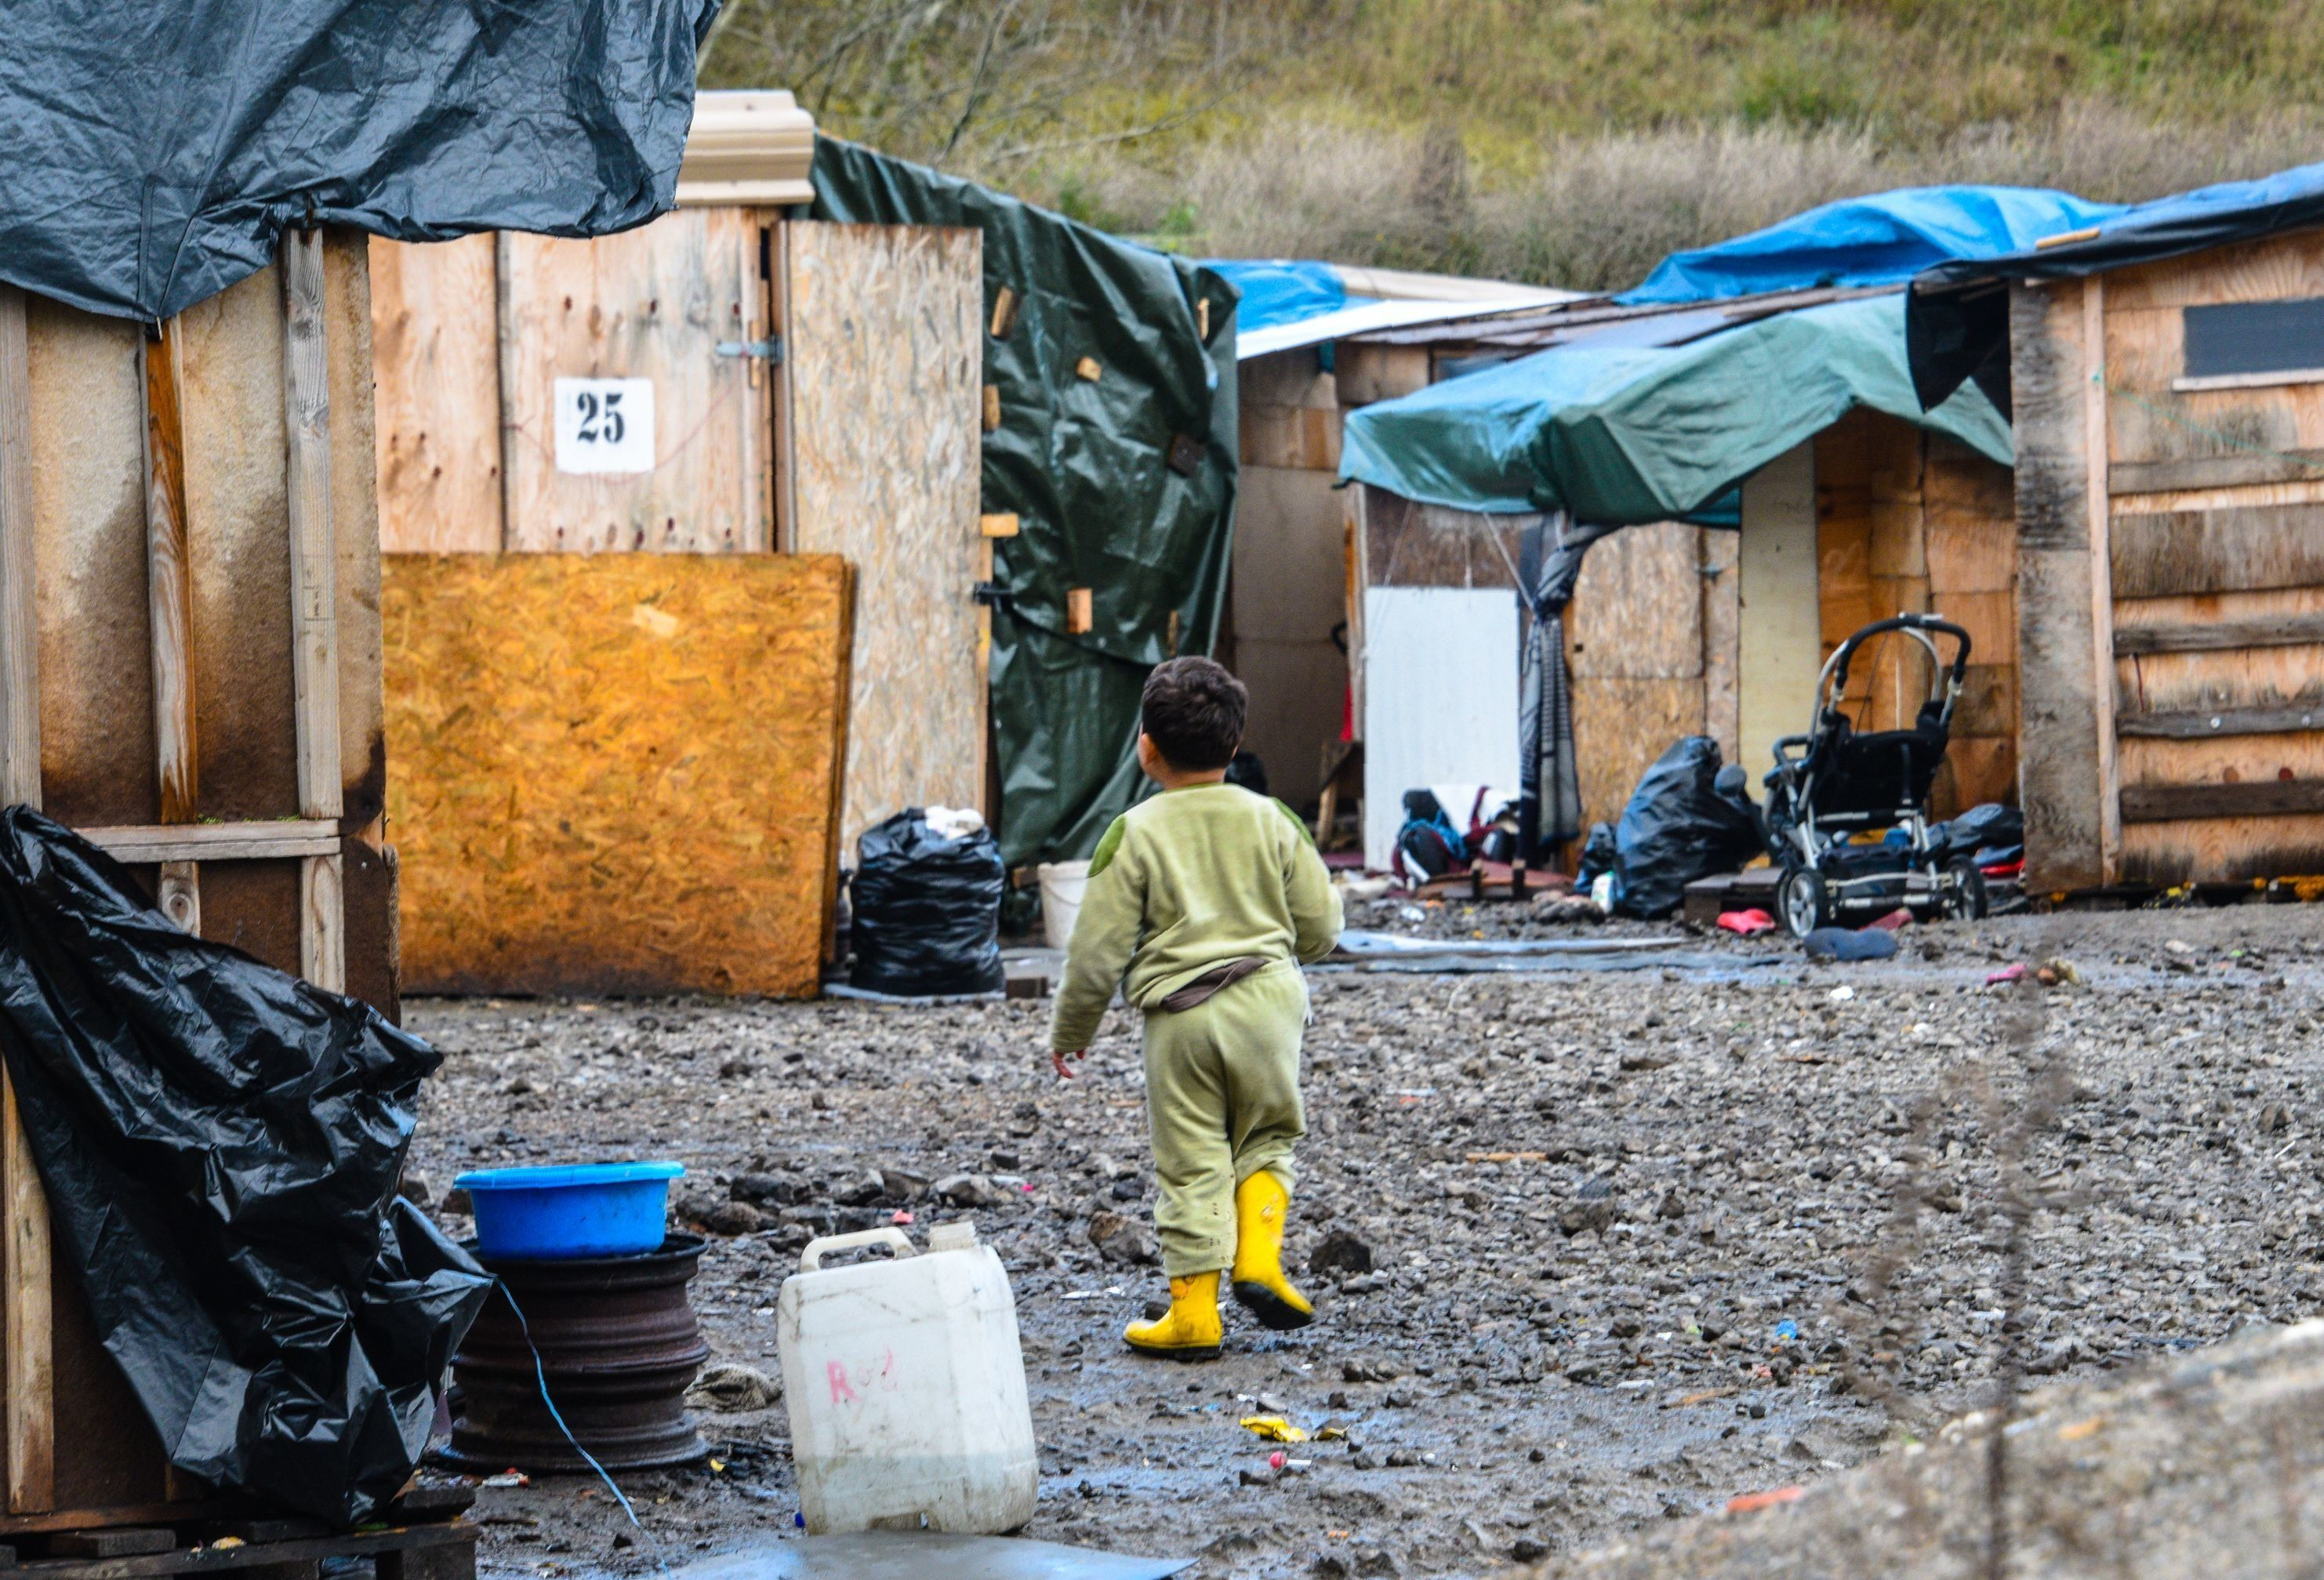 Almost a third of the children who had been staying in the Calais refugee camp, pictured above,have...